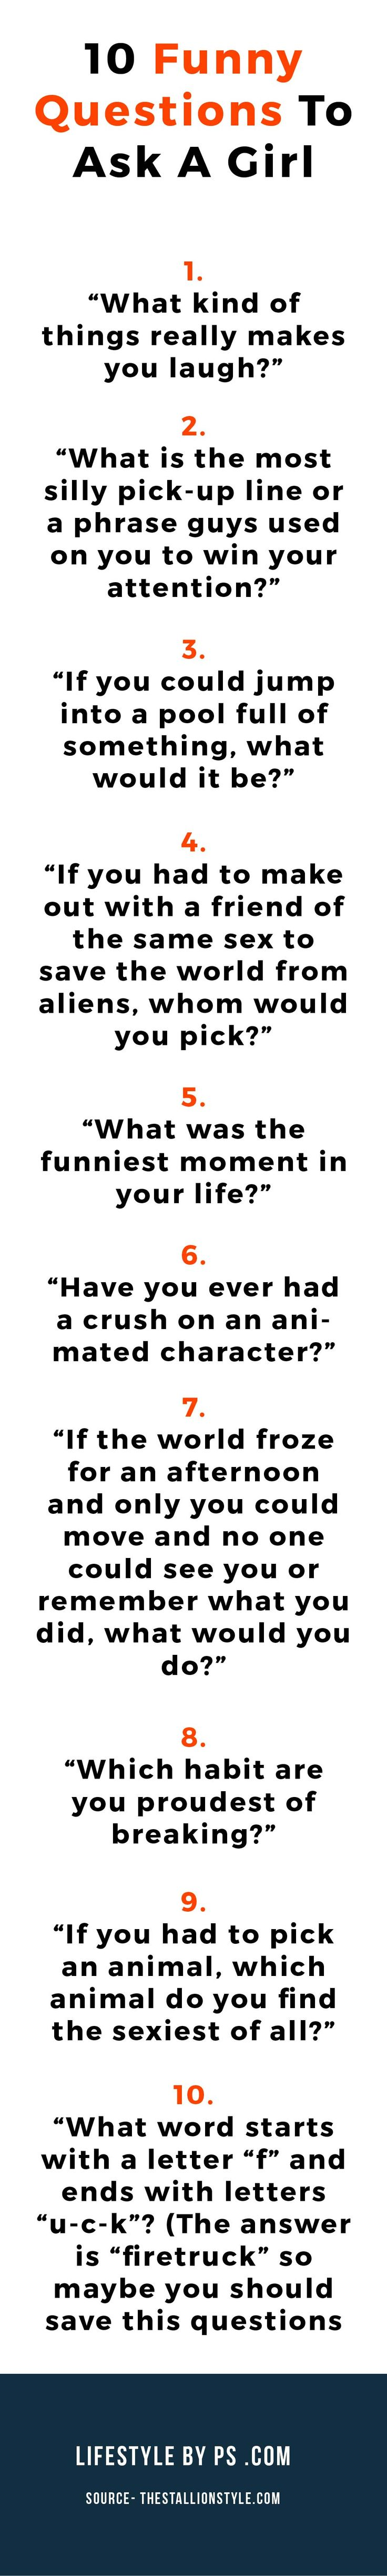 150 questions to ask a girl you want to impress funny